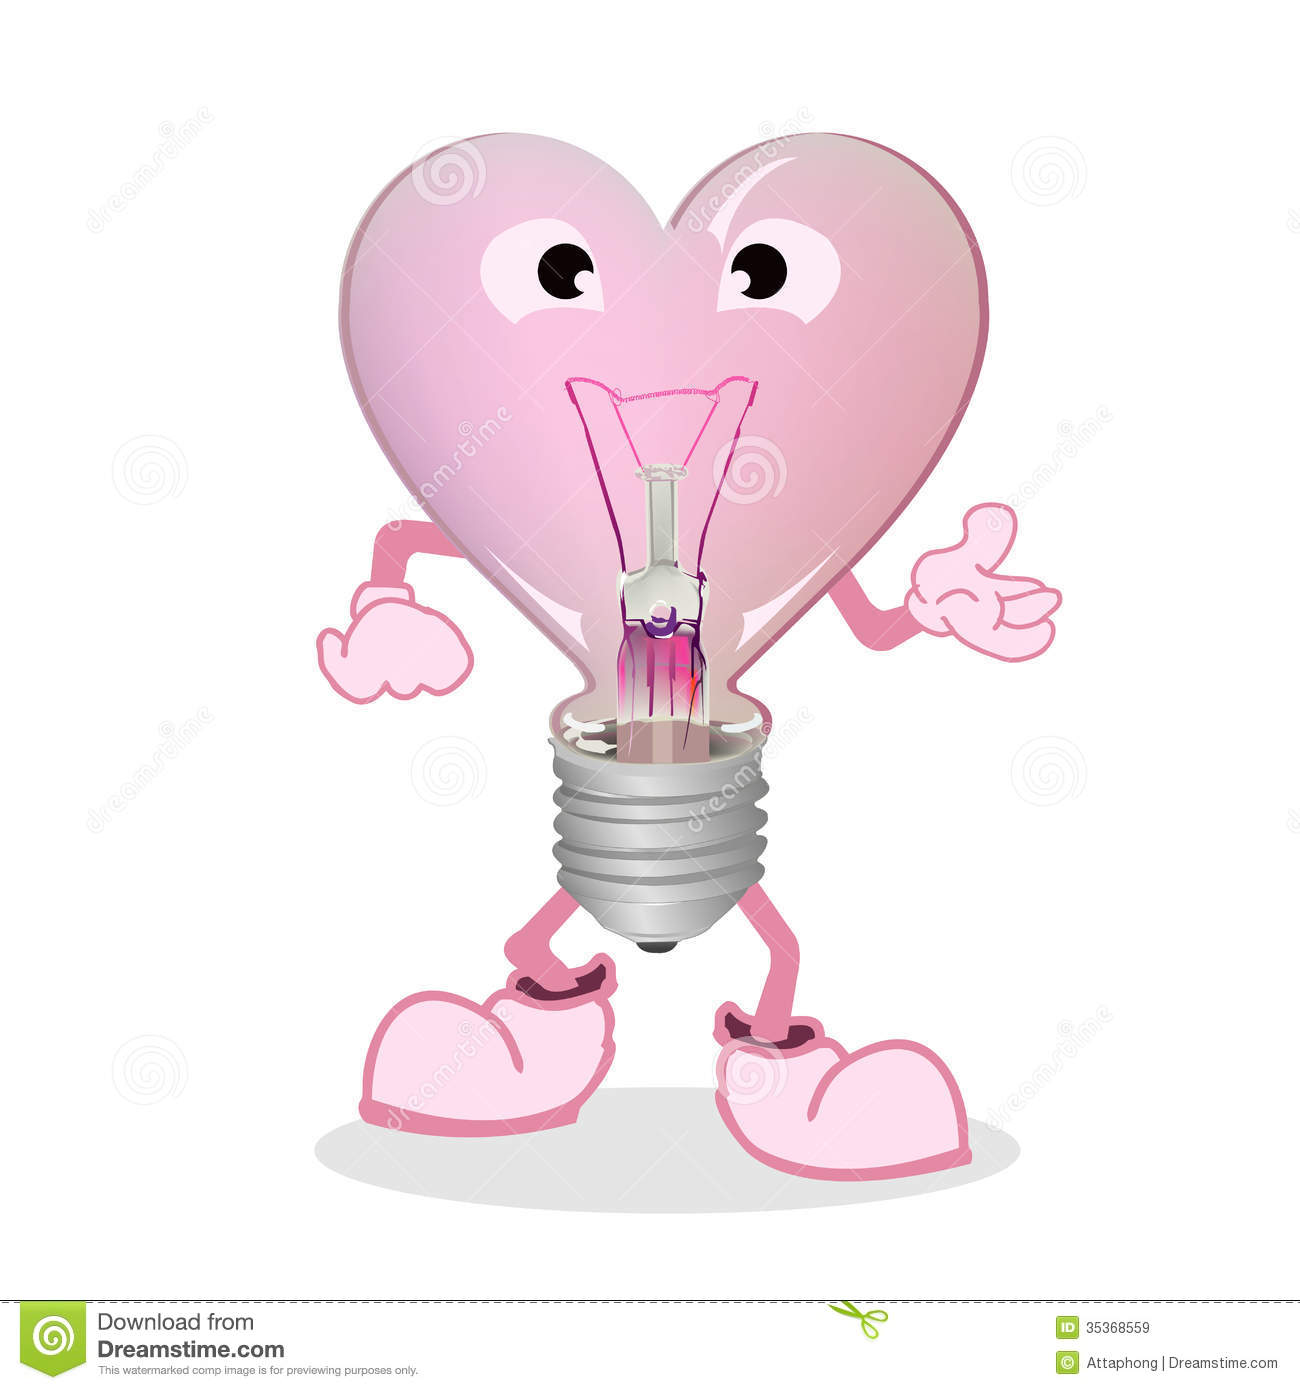 Light Bulb Cartoon Heart Royalty Free Stock Images - Image ...